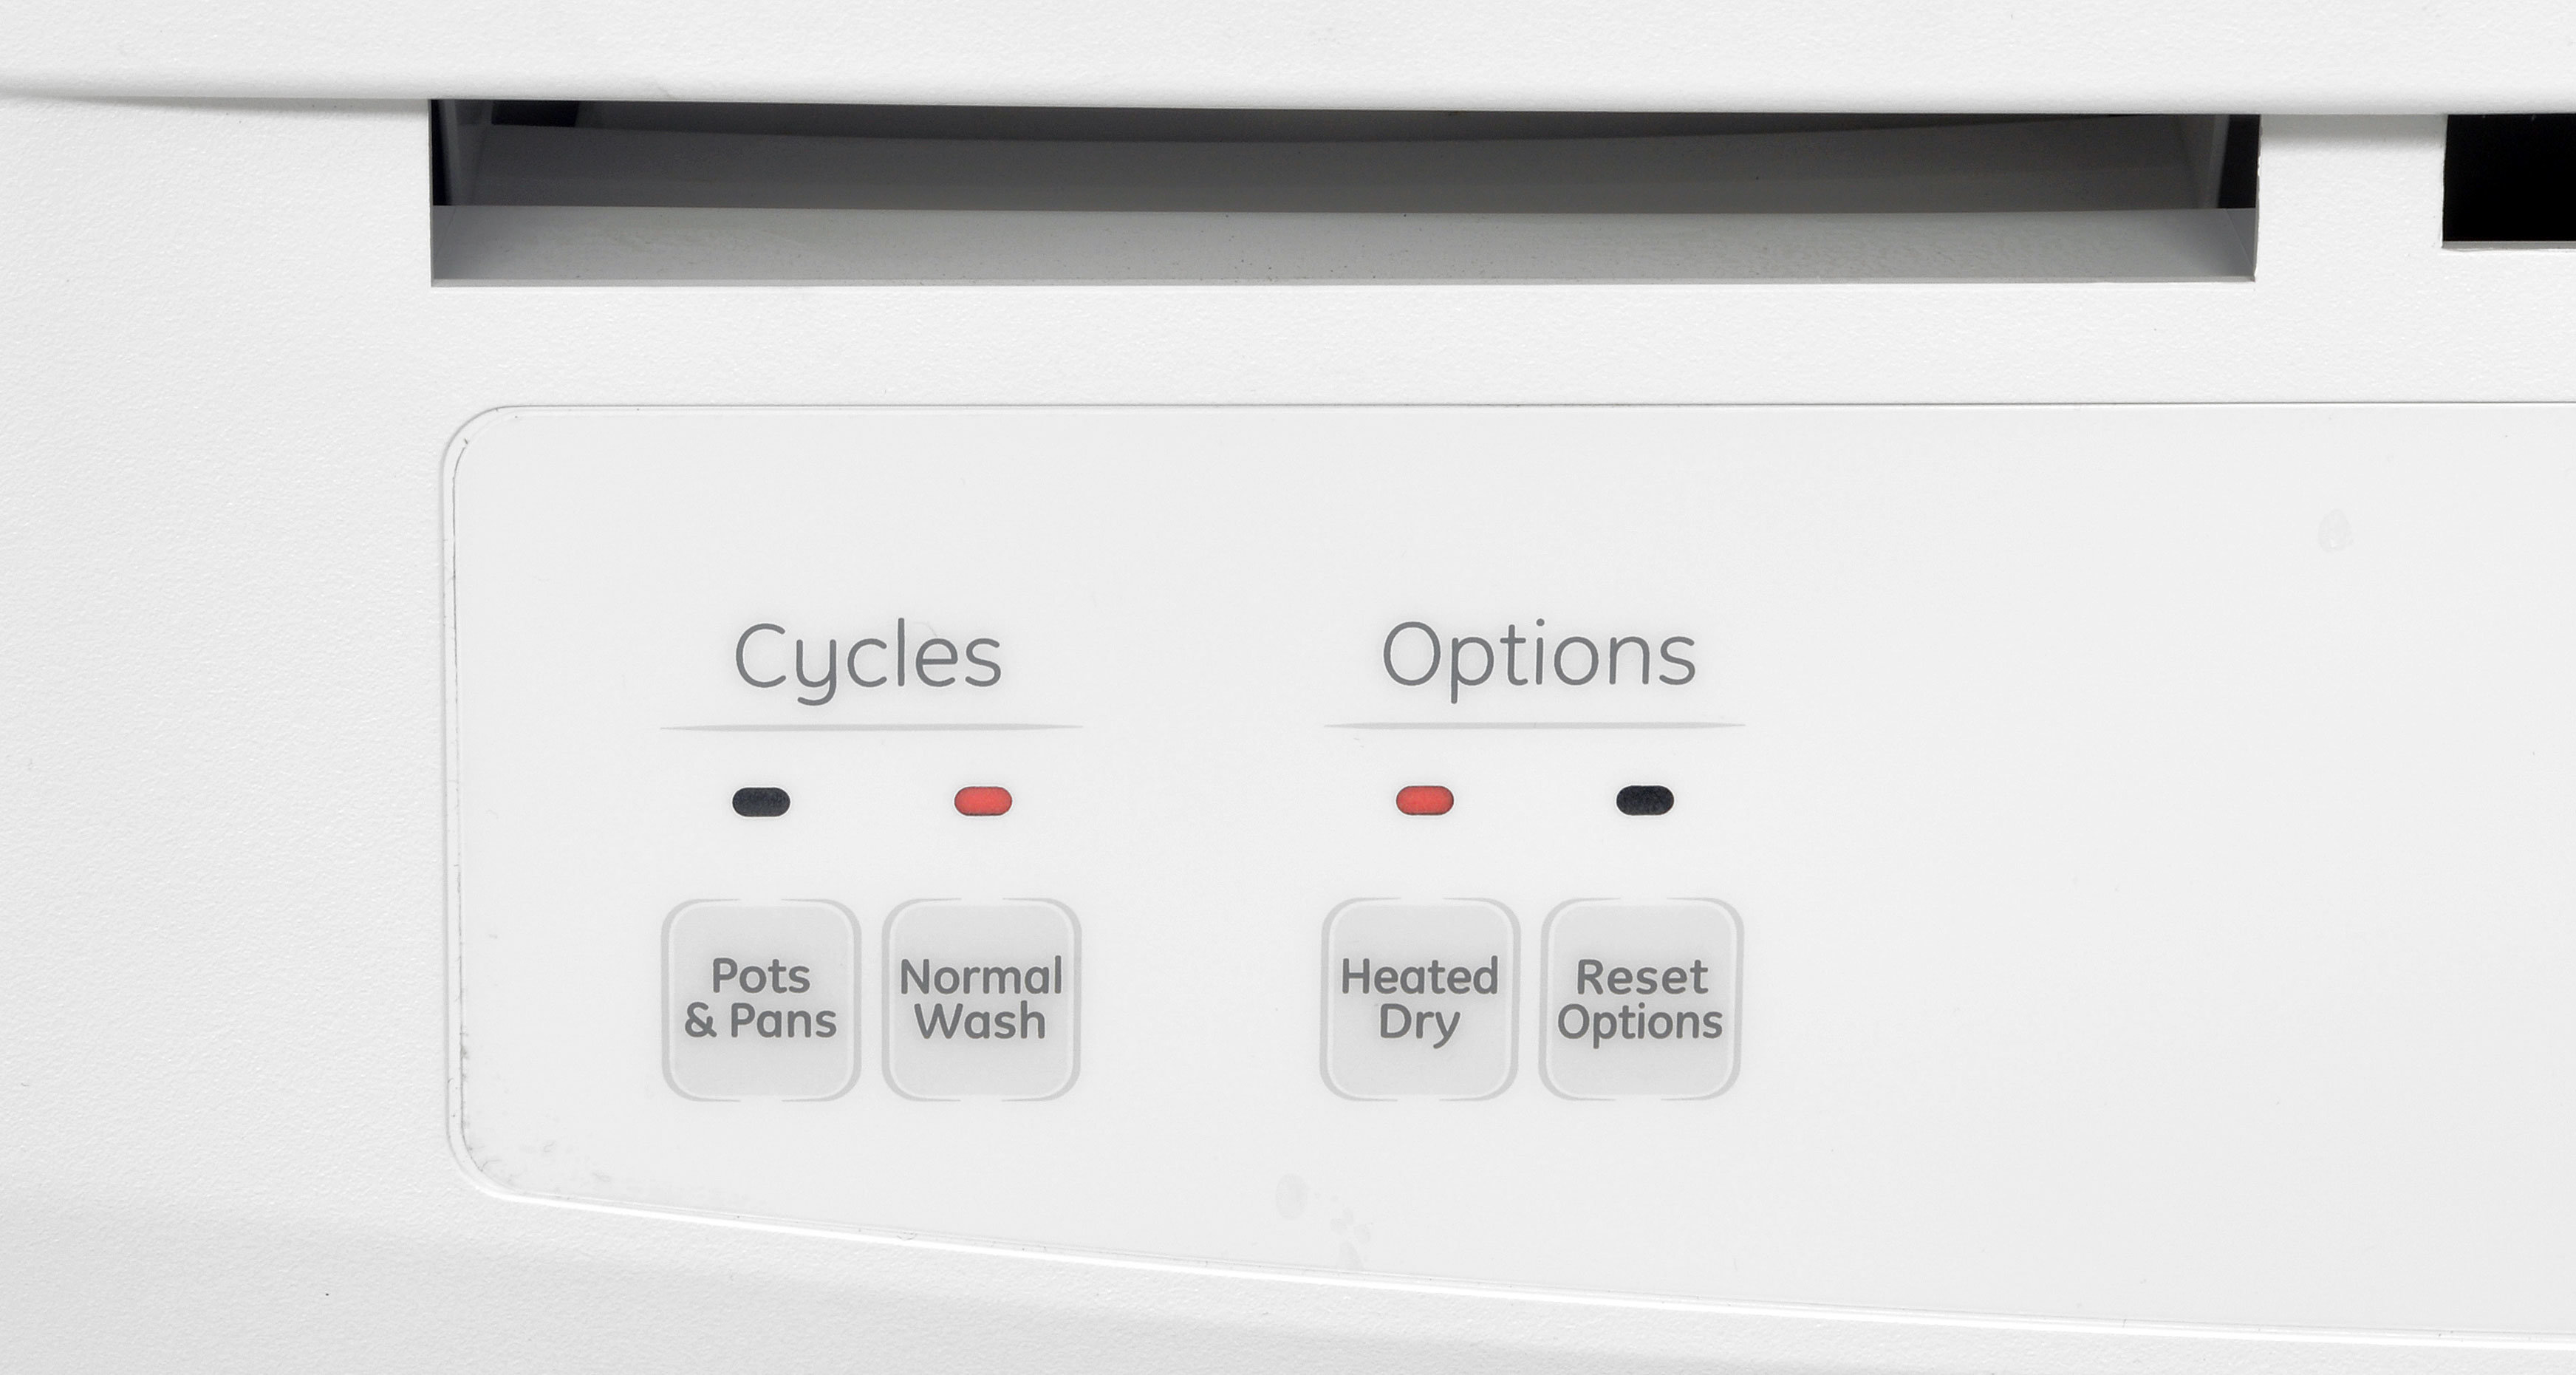 The GE GSC3500DWW's analog controls let you switch between just two cycles, with the option of a Heated Dry serving as the only extra.